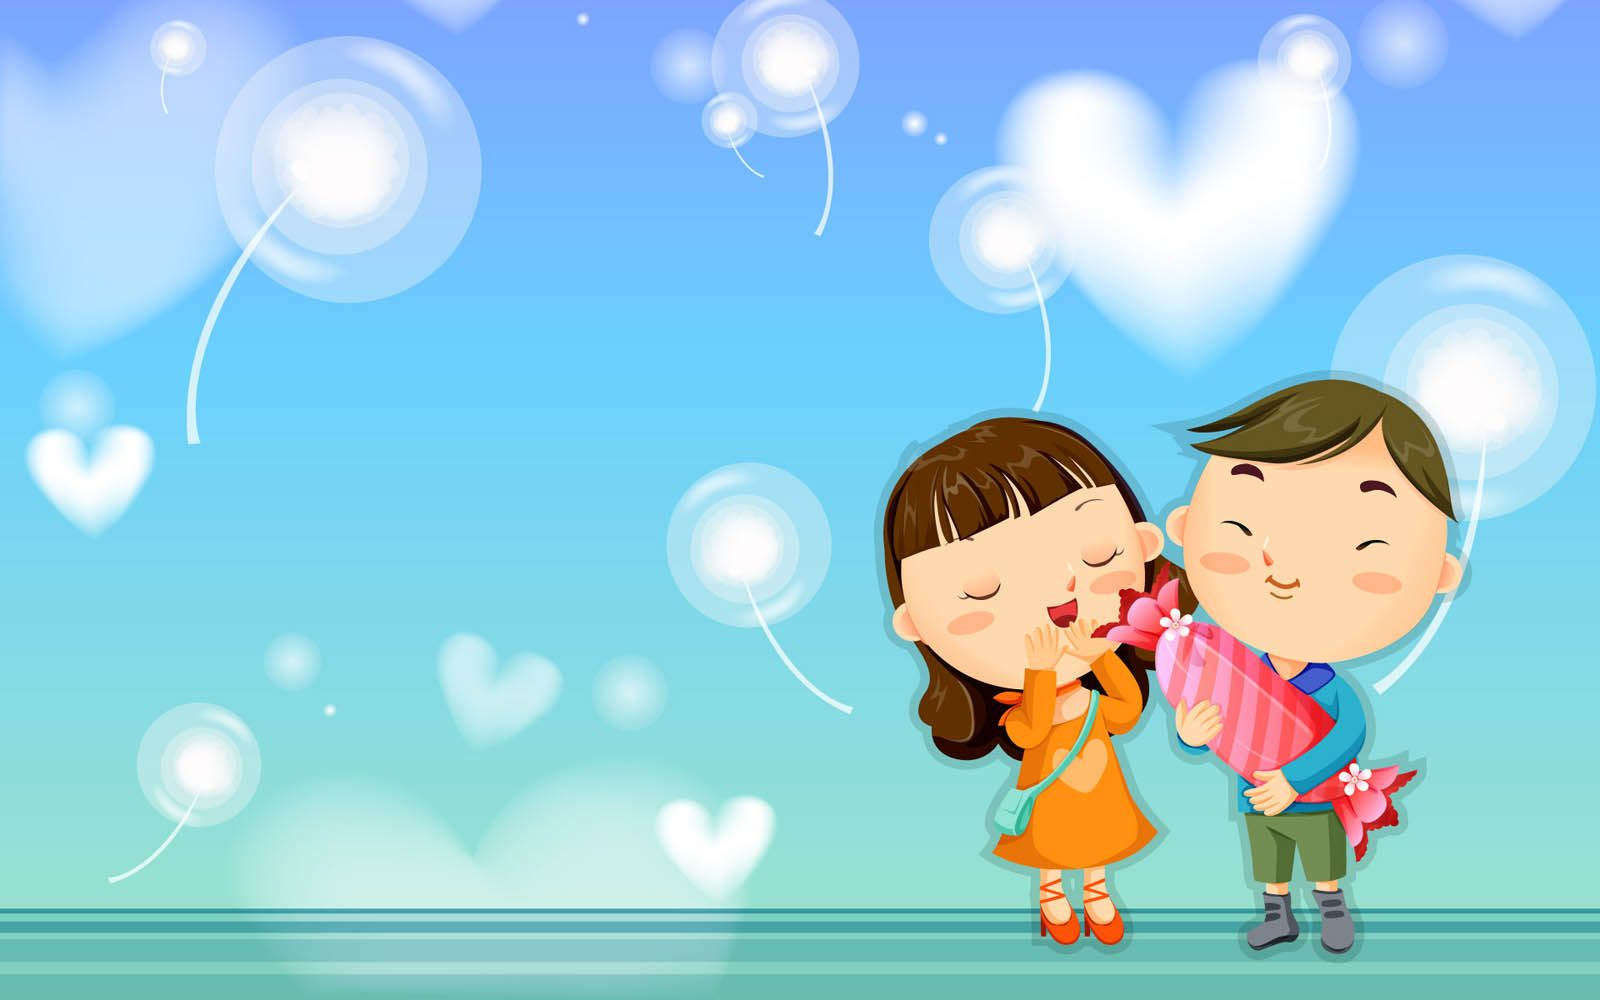 62 Wallpapers Animasi Romantis Gratis